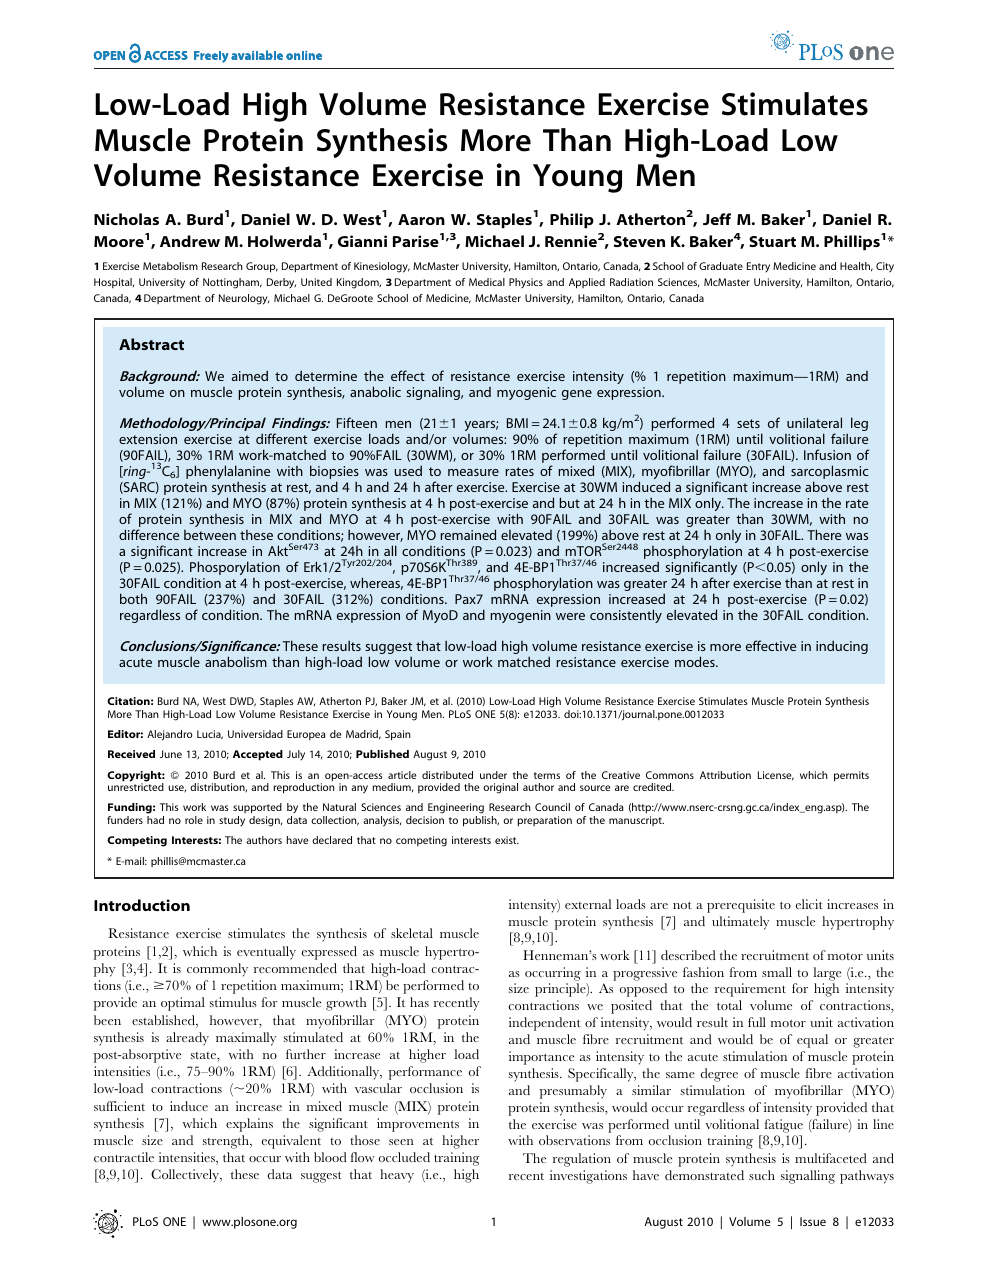 Low-Load High Volume Resistance Exercise Stimulates Muscle